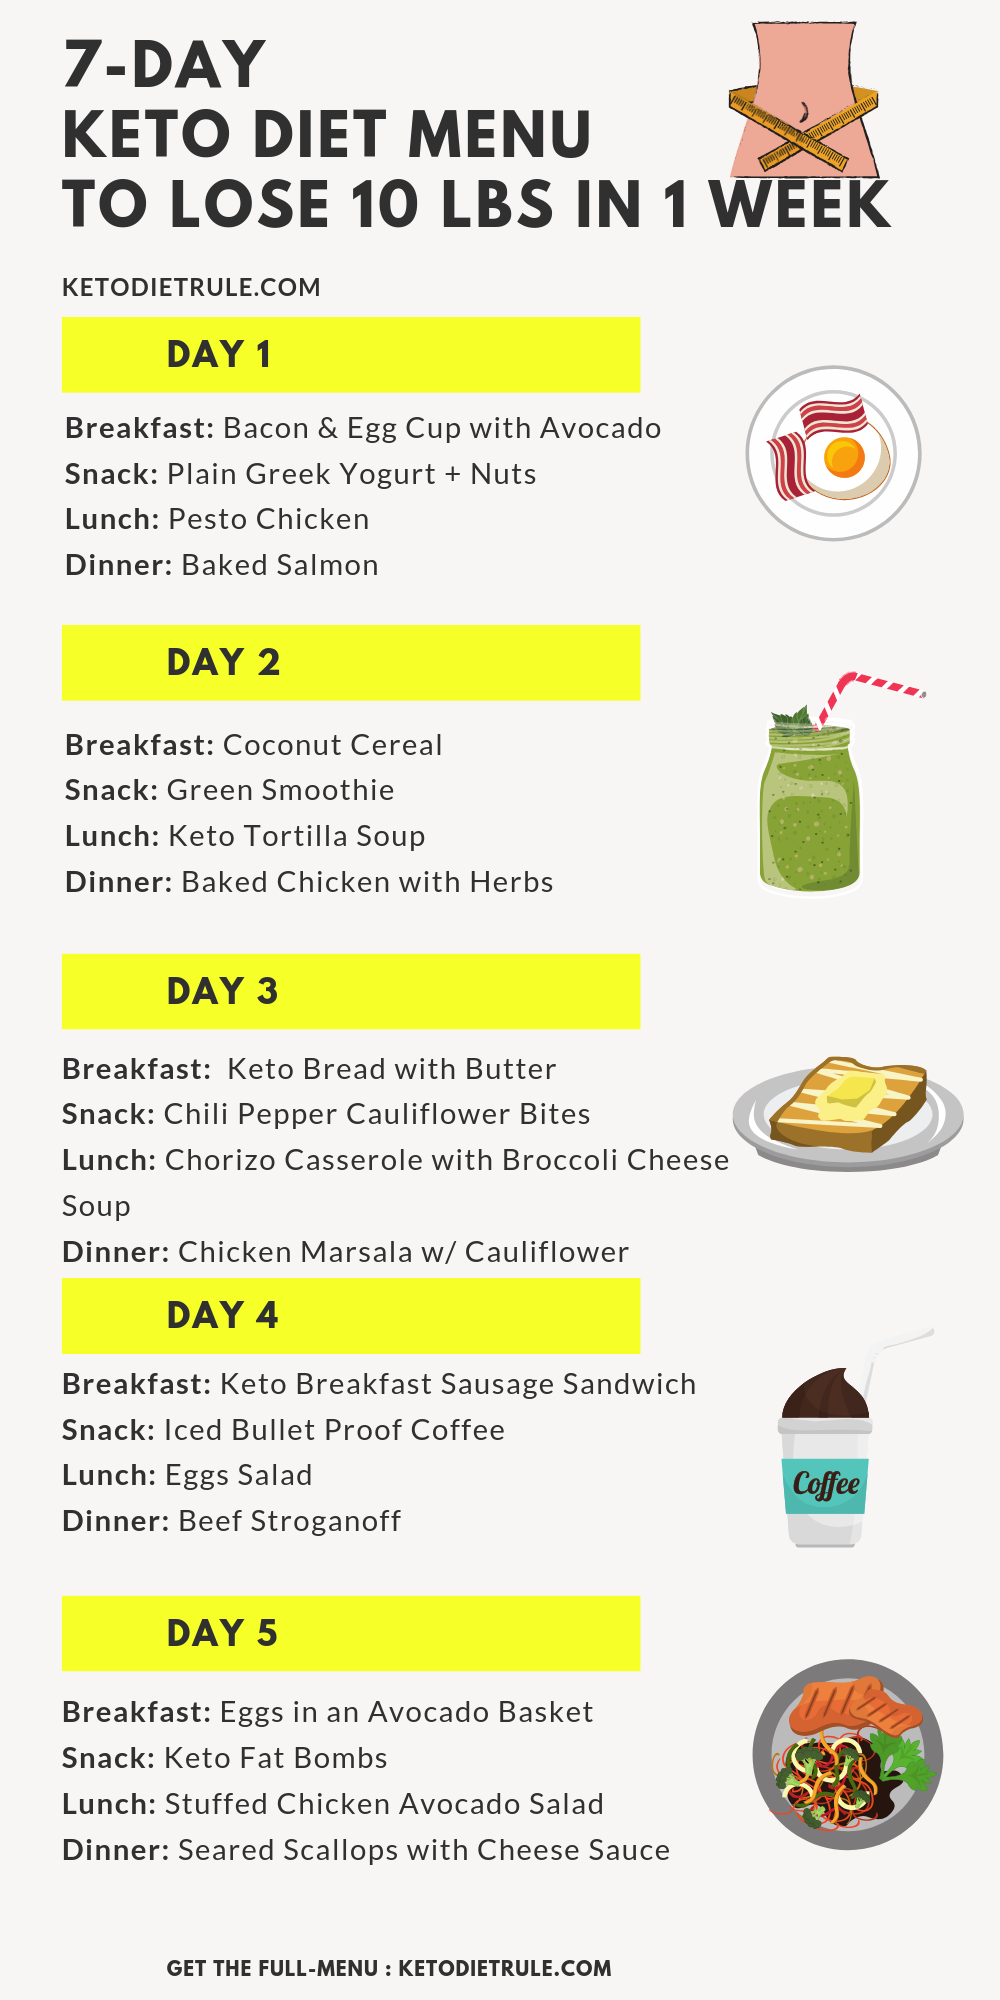 Thinking About Starting The Keto Or Ketogenic Diet Here S A 7 Day Keto Meal Plan And Everything El Keto Diet Menu Keto Diet Meal Plan Ketogenic Diet Meal Plan